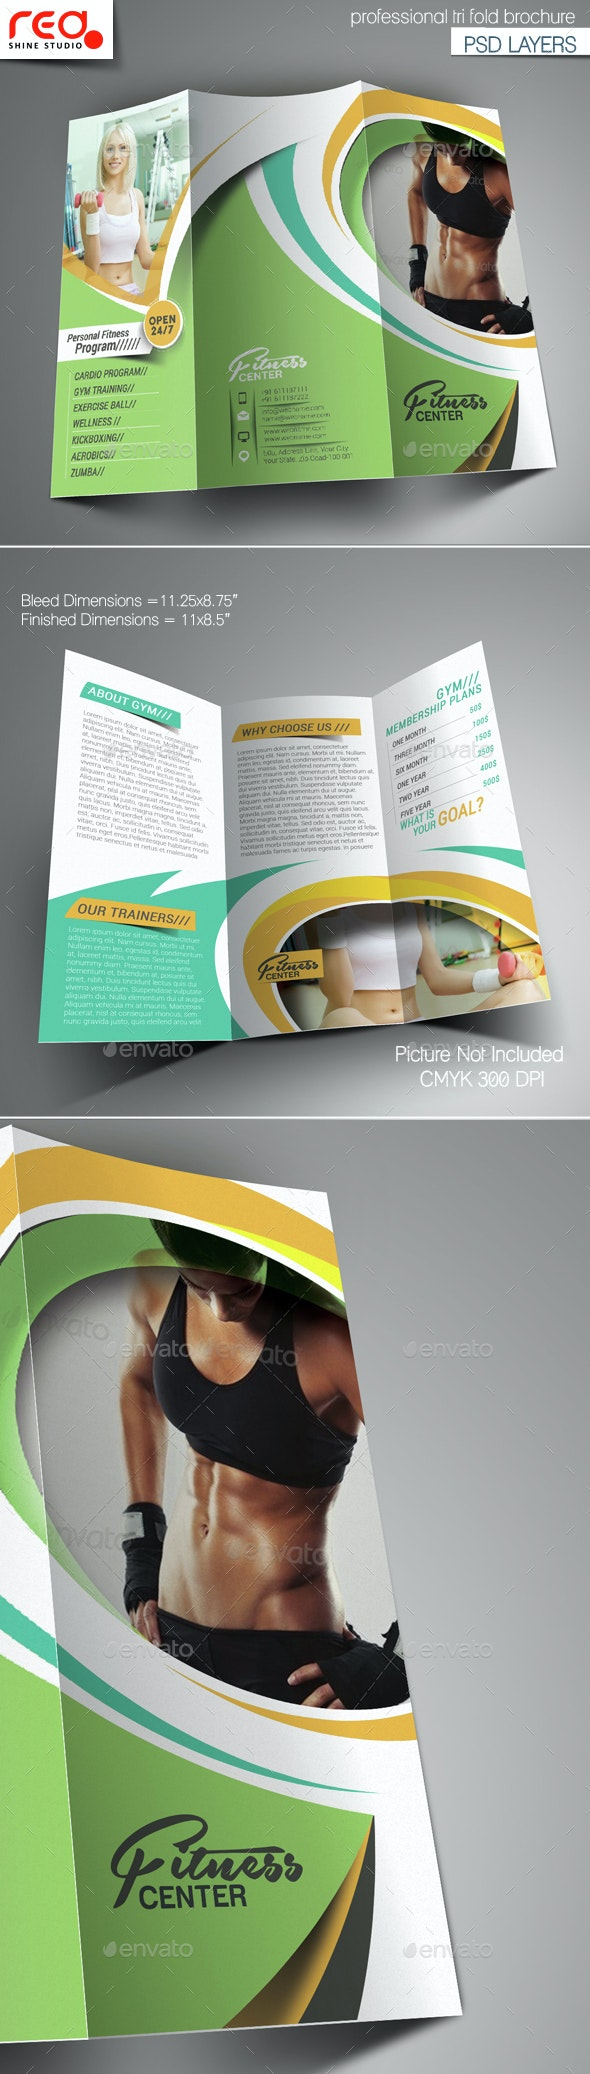 Fitness & Yoga Center Trifold Brochure Template - Corporate Brochures